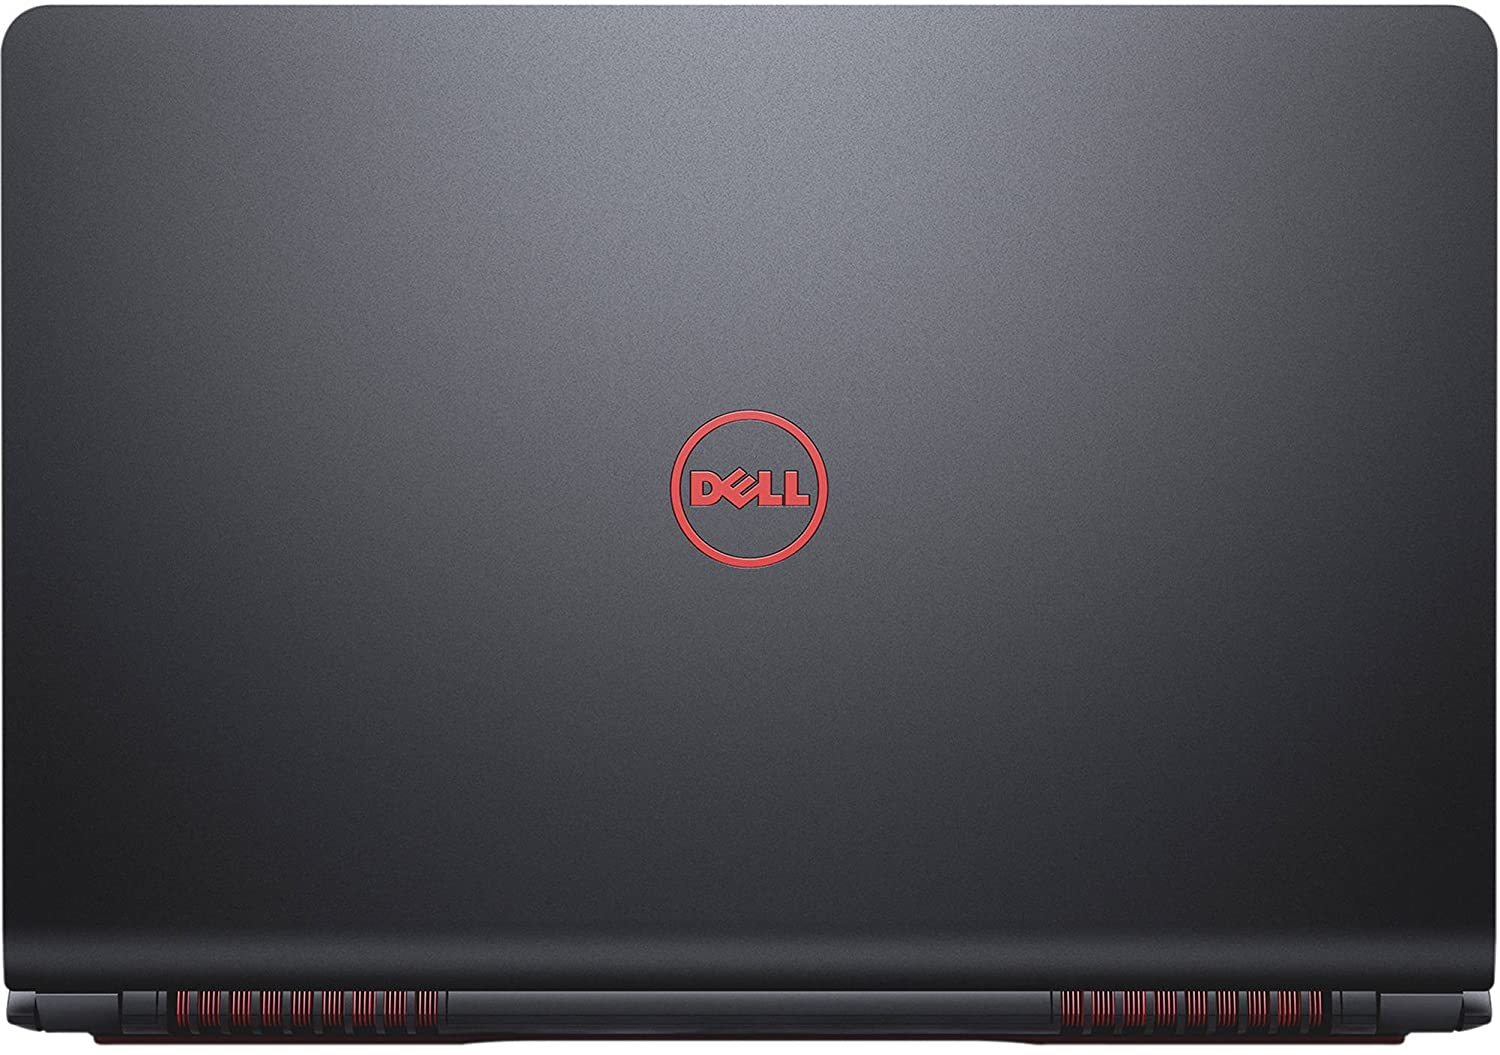 Amazon.com: Dell Inspiron 15 5000 5577 Gaming Laptop - 15.6